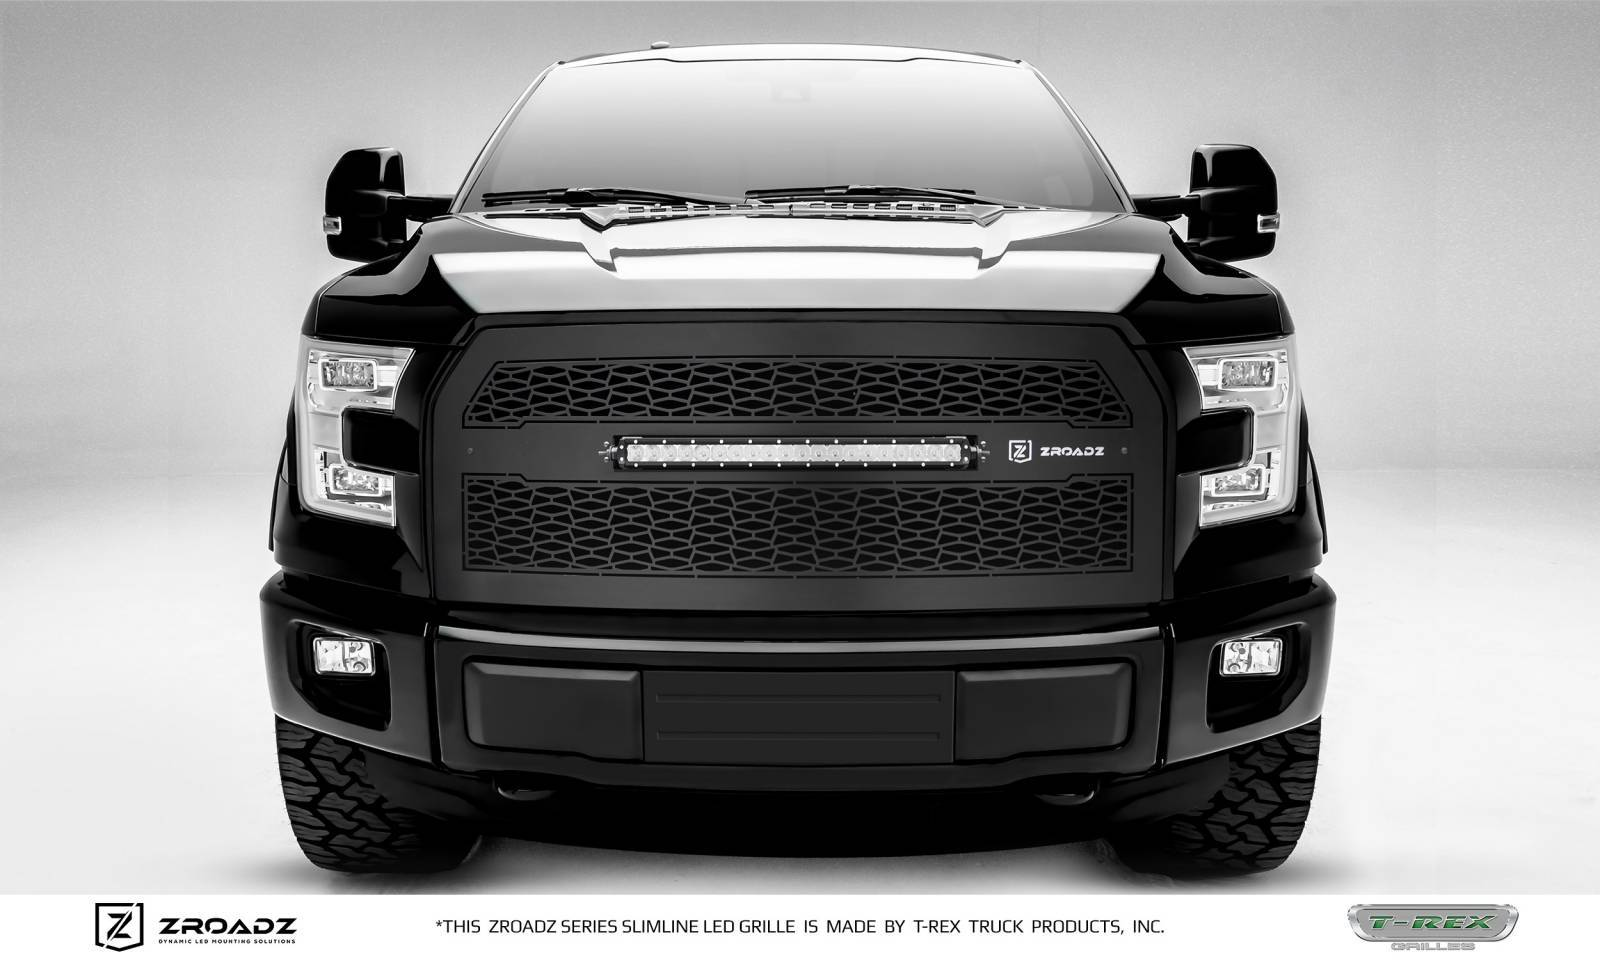 T-REX Ford F150 - ZROADZ Series - w/o Forward Facing Camera - Main Replacement - Grille w/ One 20 Inch Slim Line Single Row LED Light Bar - Includes Universal Wiring Harness - Part# Z315731